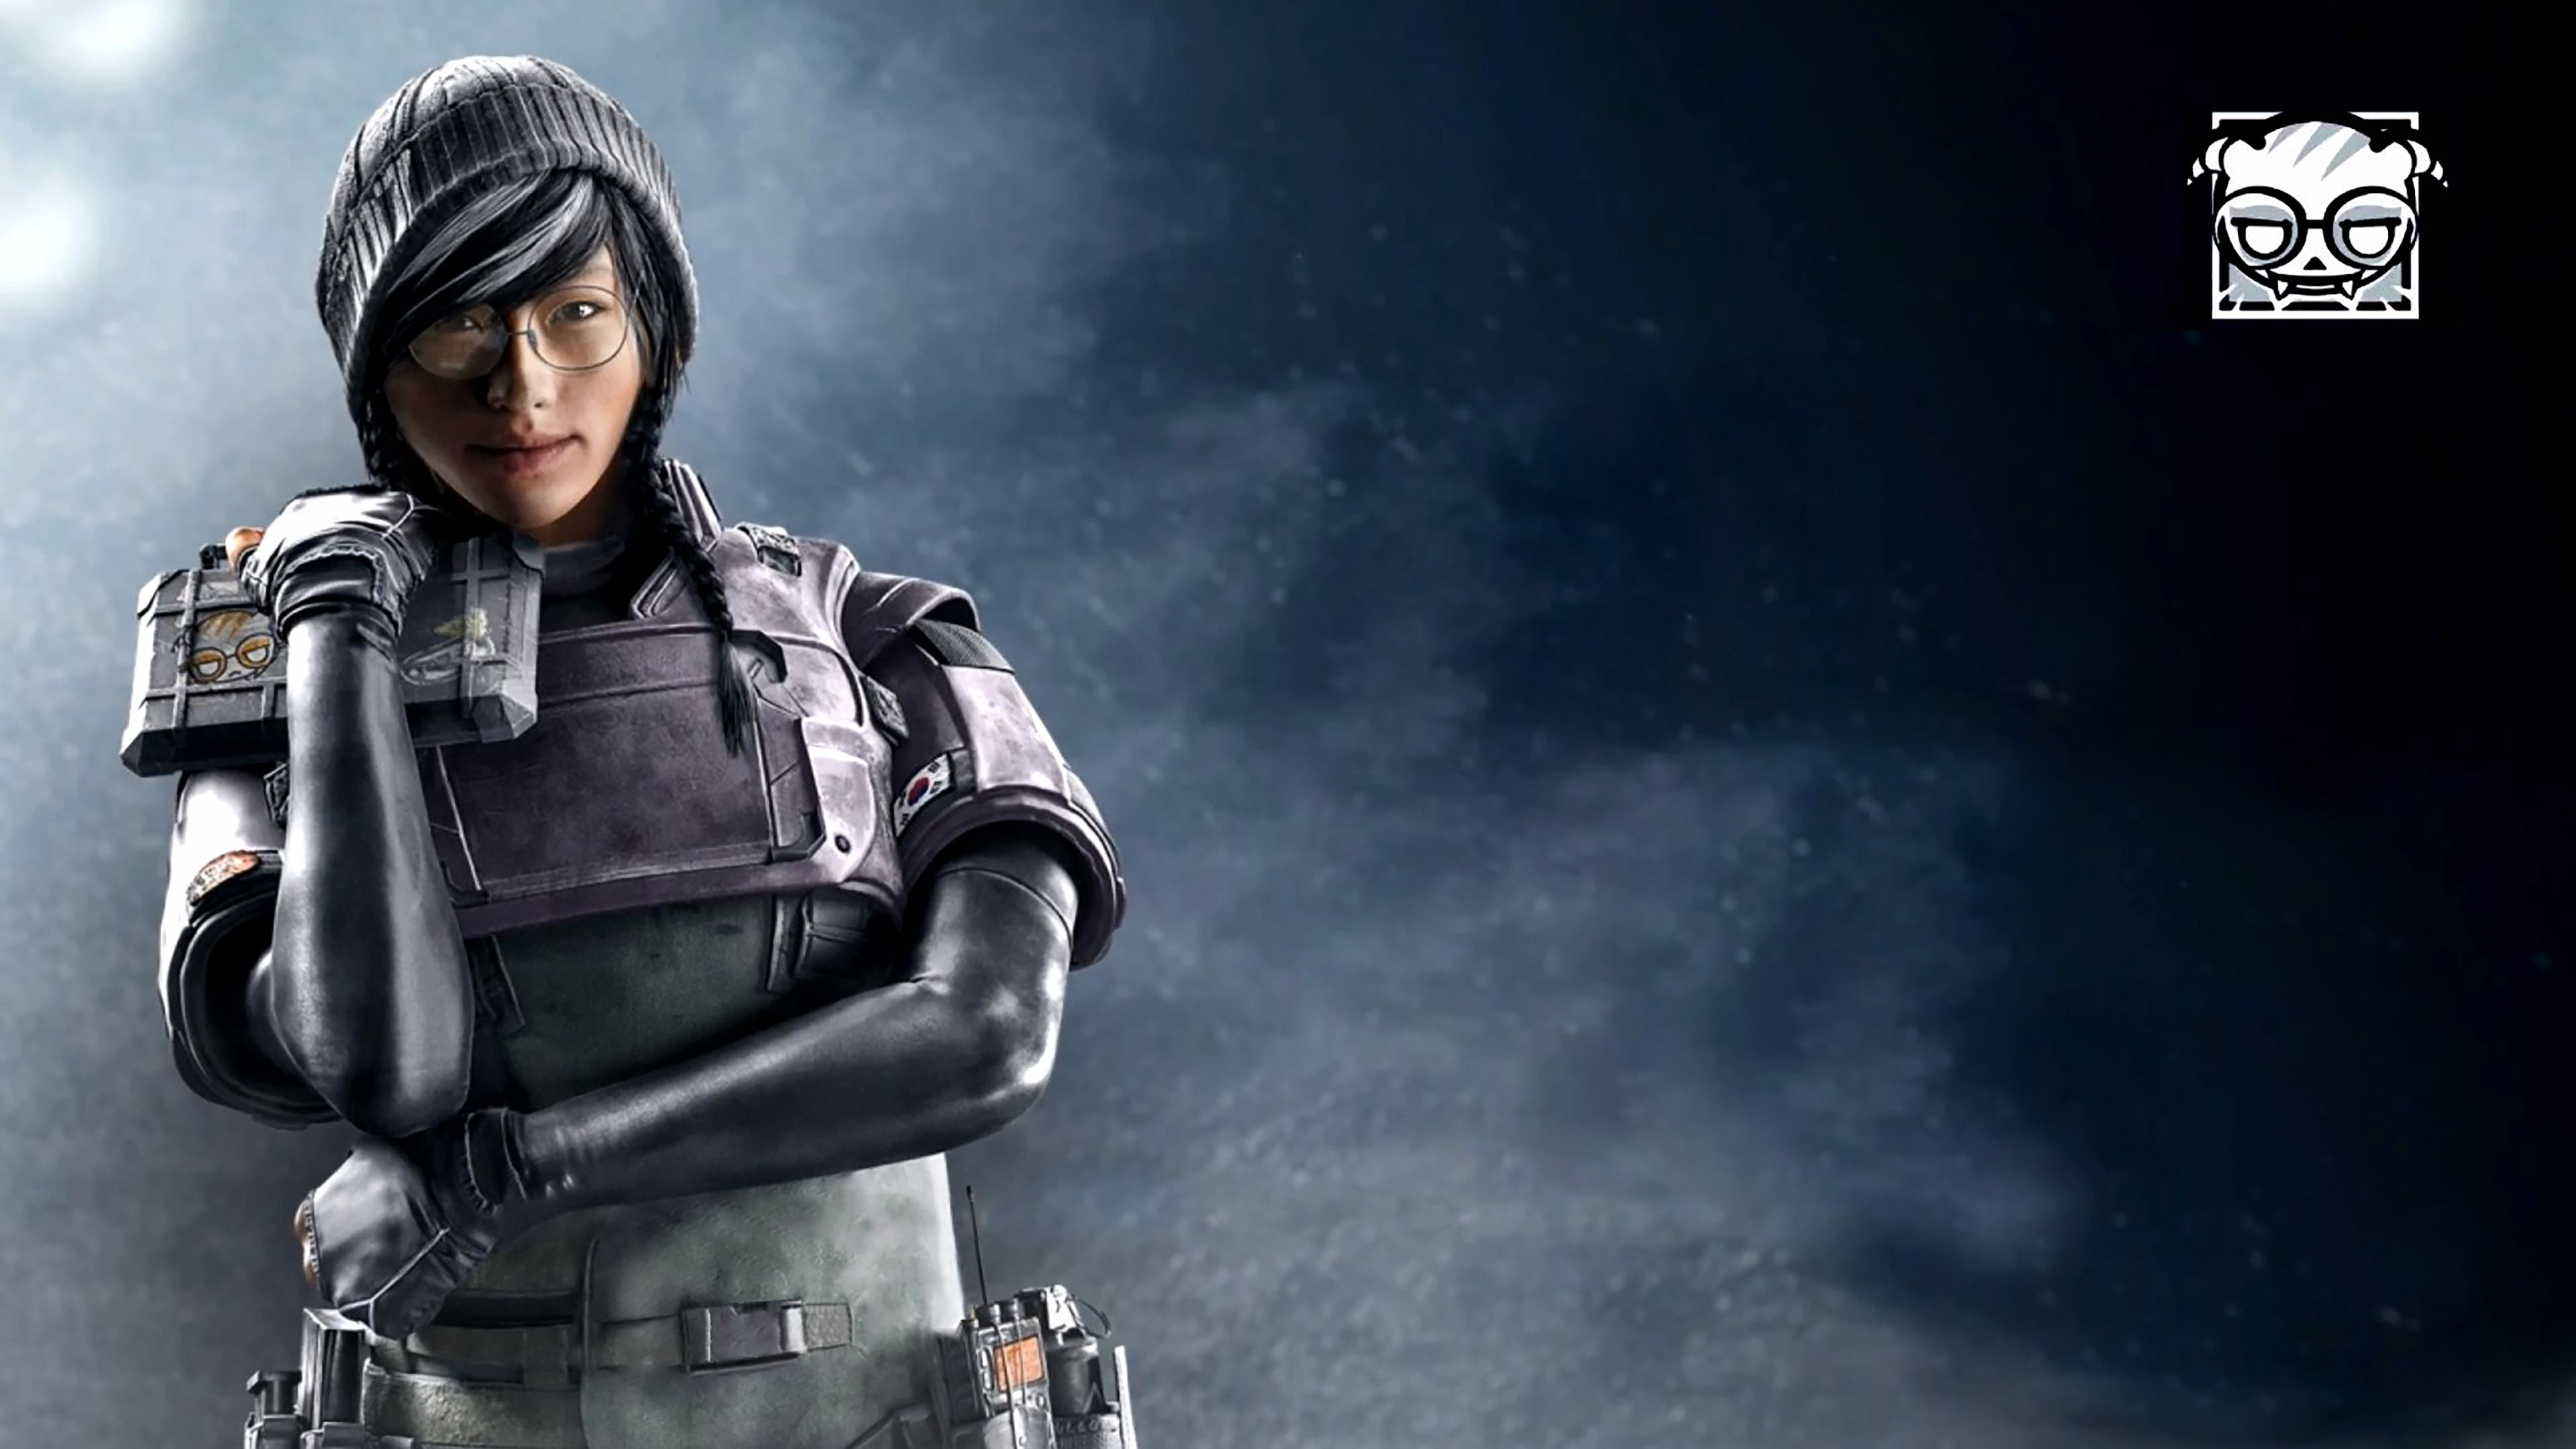 Dokkaebi Wallpapers Top Free Dokkaebi Backgrounds Wallpaperaccess